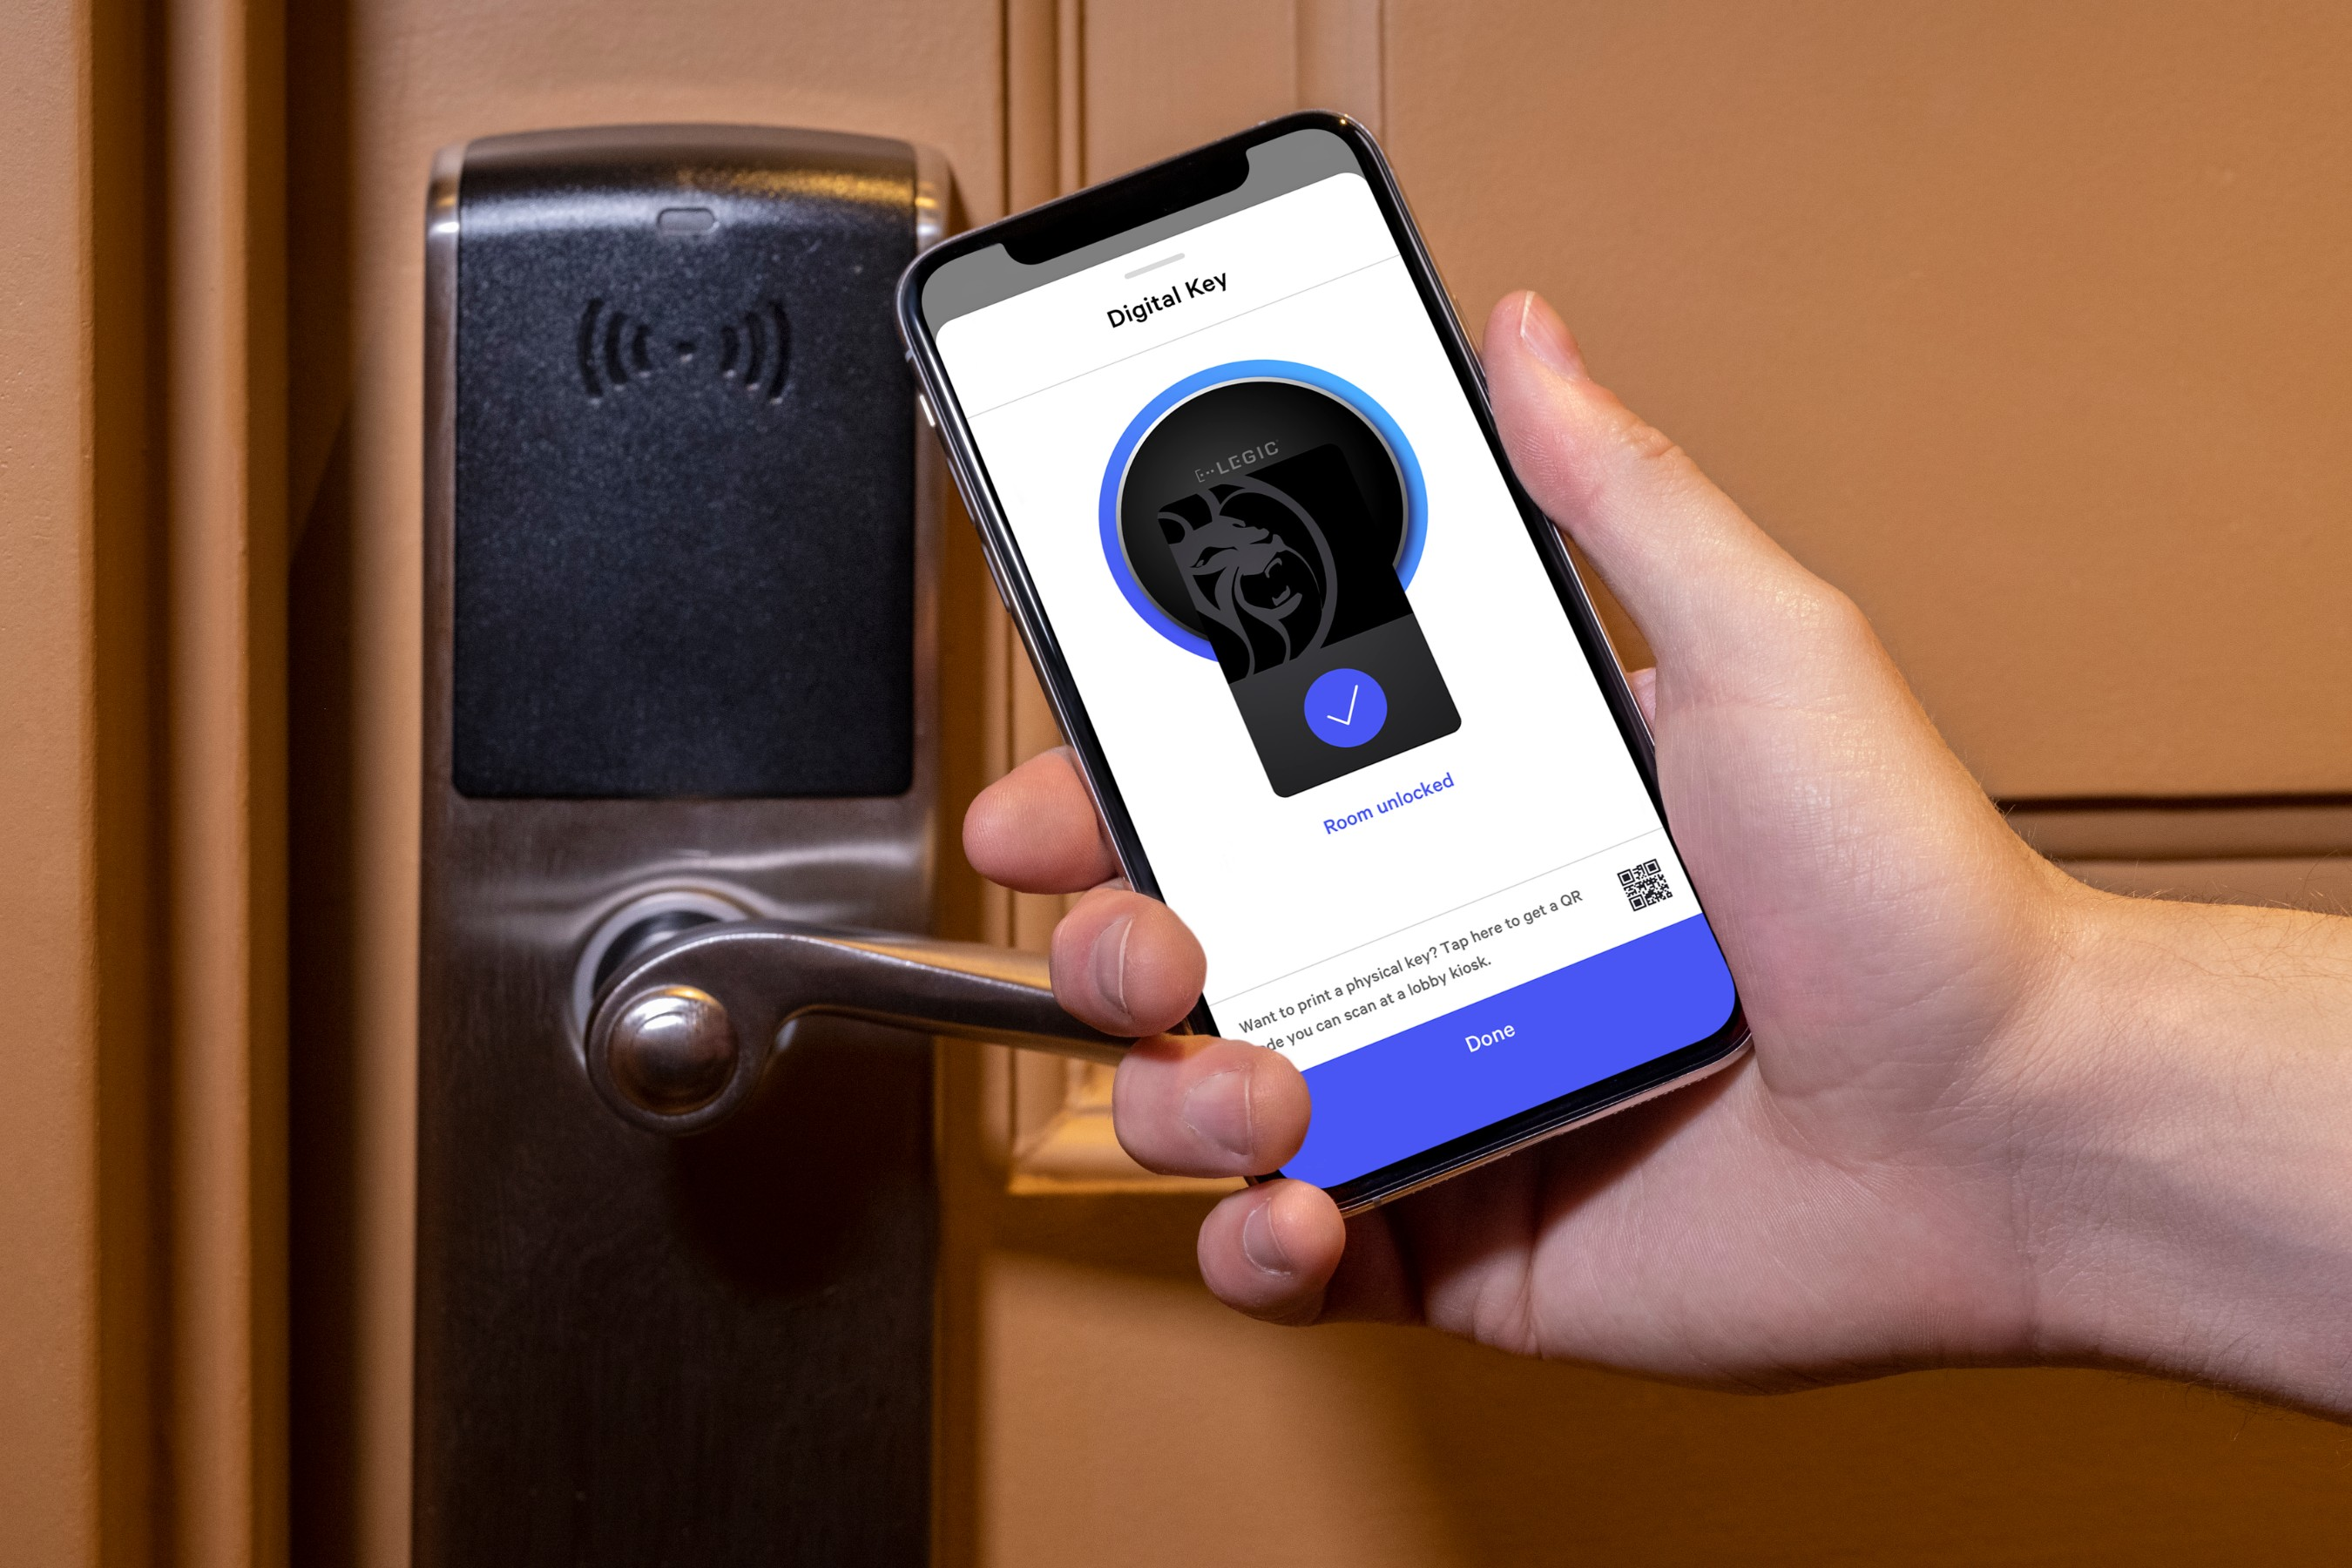 One of MGM Resorts' digital innovations is the option for guests to have a contactless check-in experience through the MGM Resorts' app, including payment, identification and a digital room key.